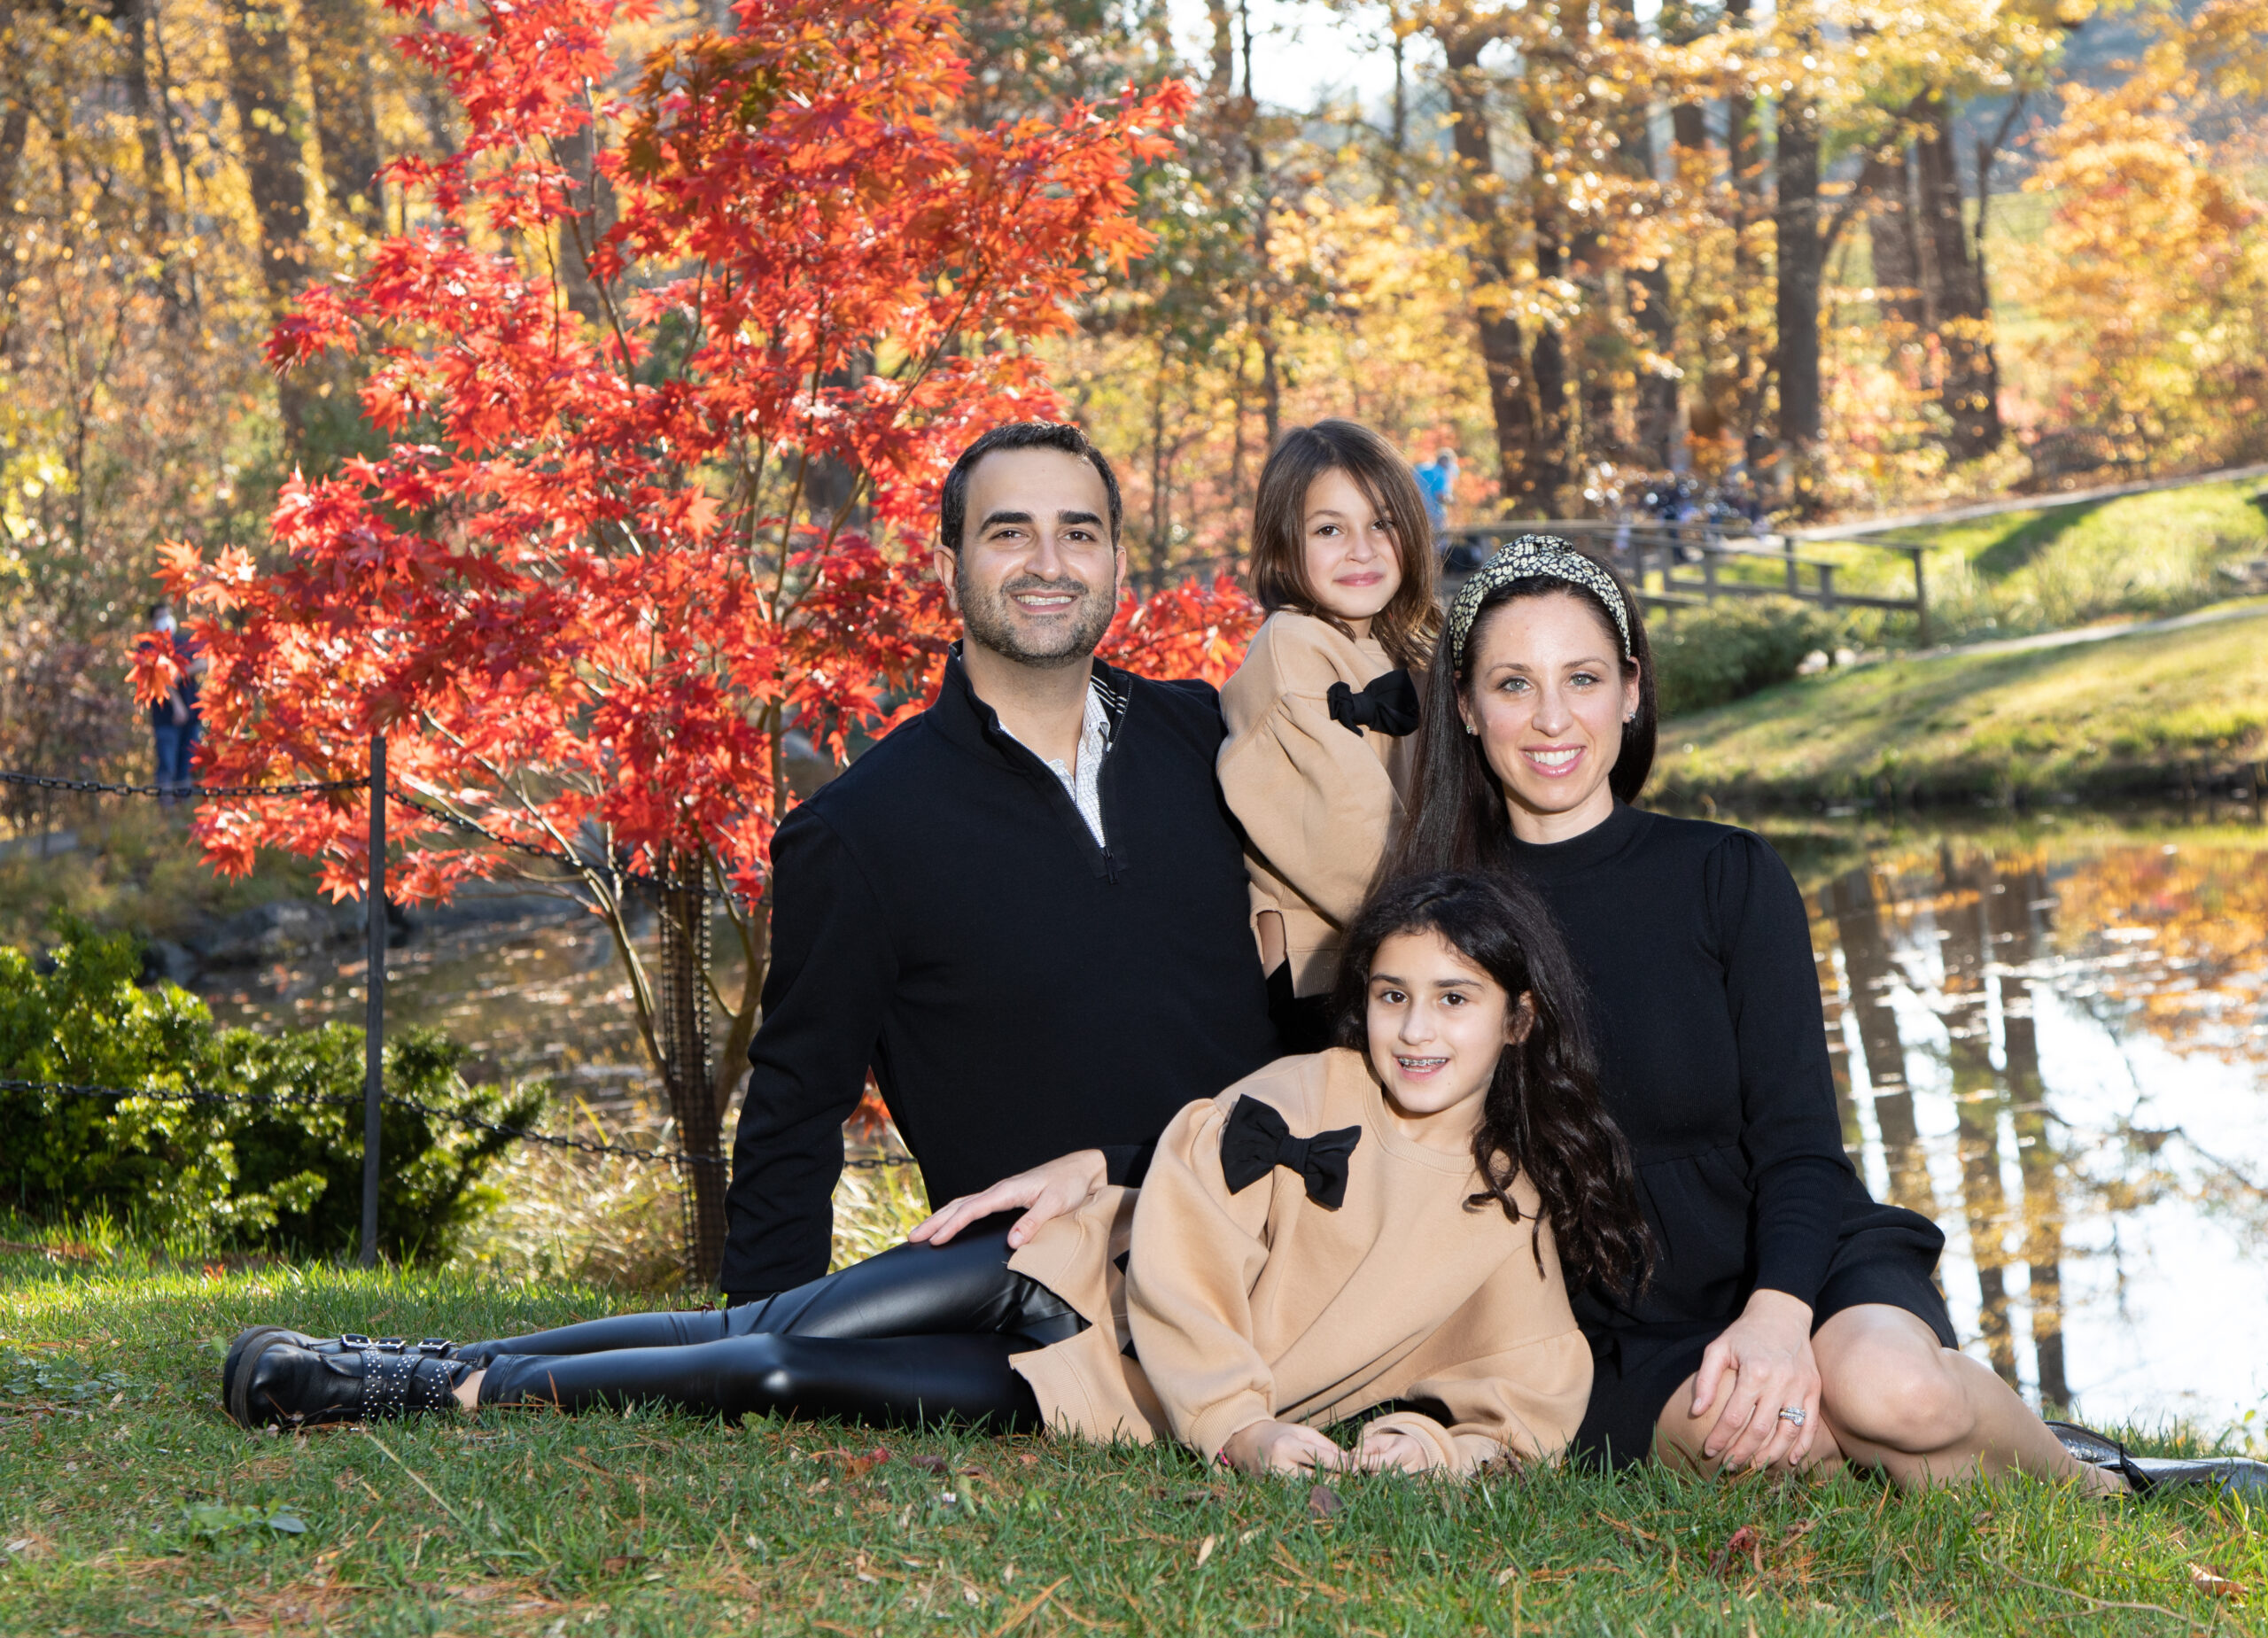 what to wear in family photo session?